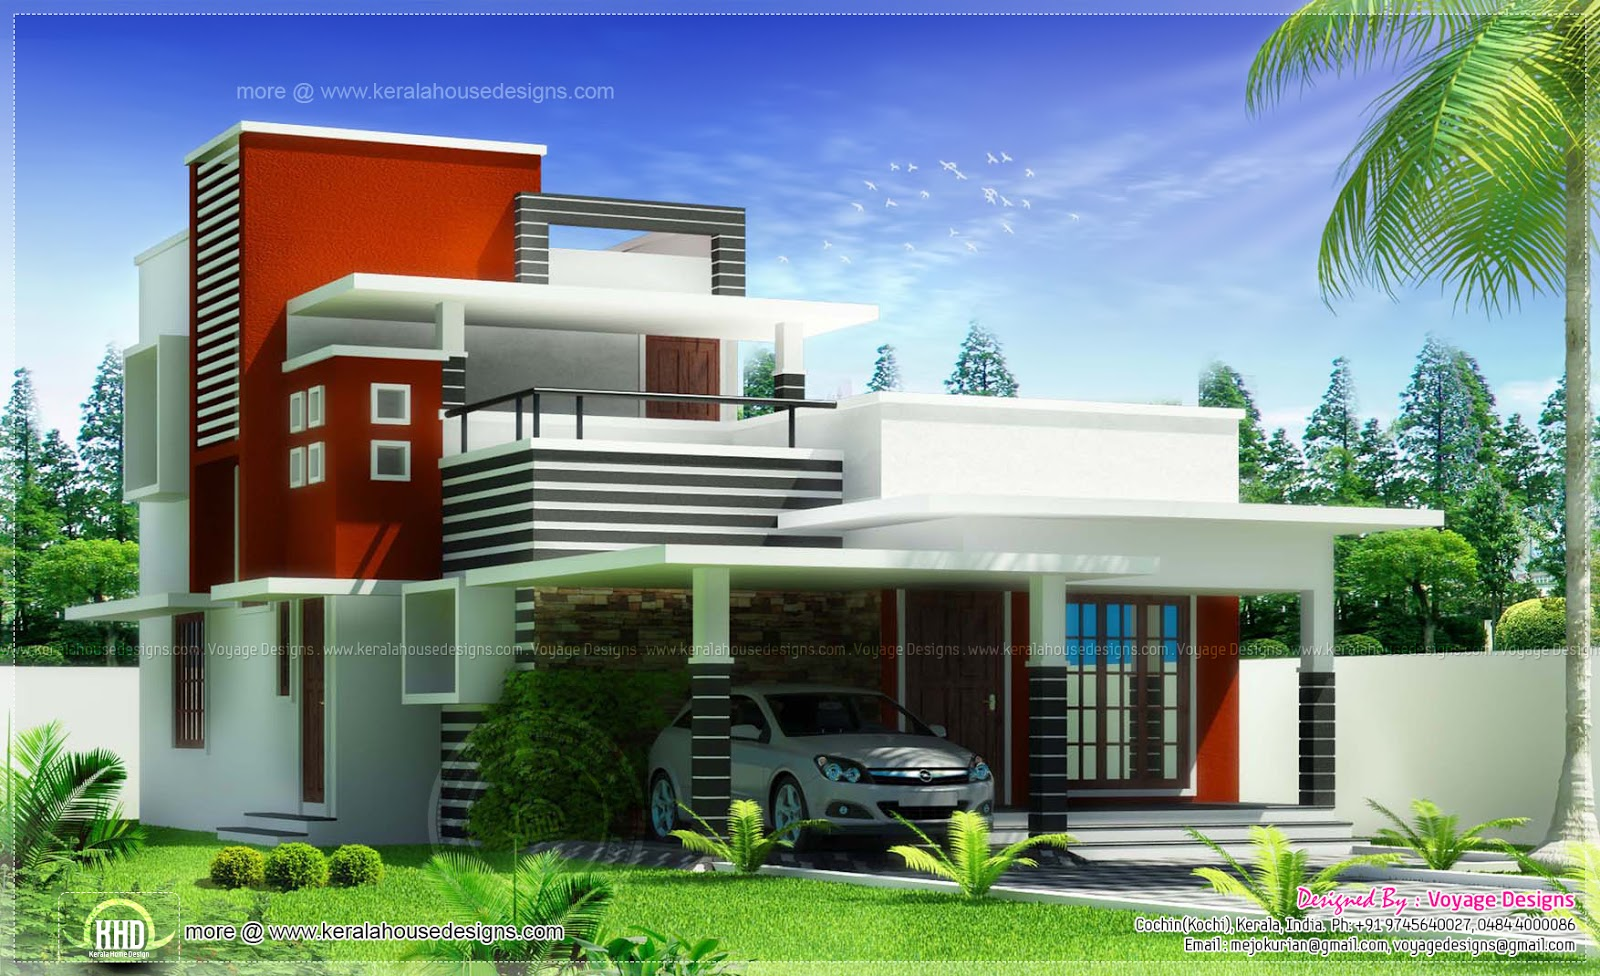 3 bed room contemporary style house kerala home design for Home designs in kerala